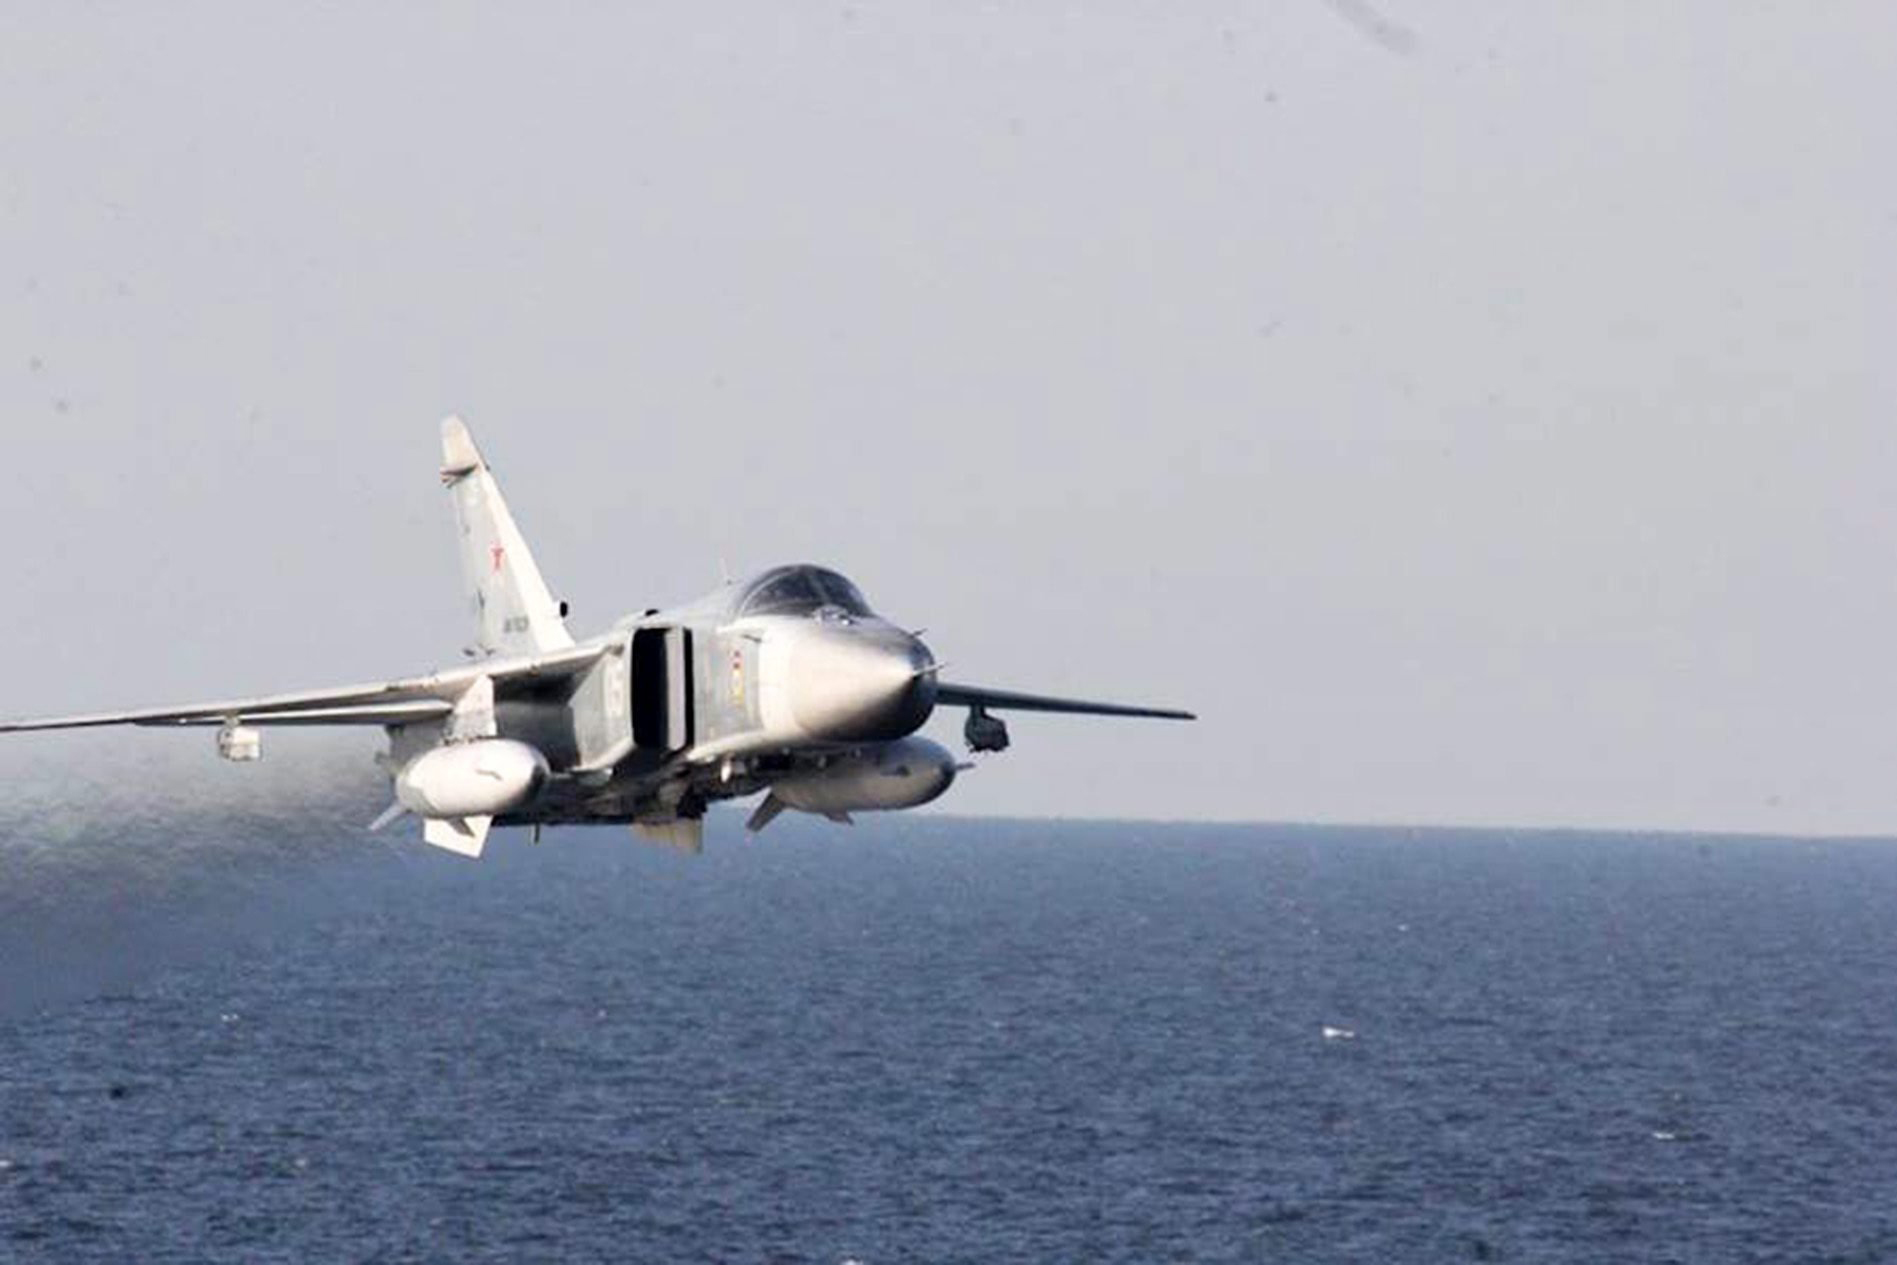 A handout image made available on 13 April 2016 by the US Navy shows A Russian Sukhoi Su-24 attack aircraft makes a low altitude pass by USS Donald Cook (DDG 75) in the Baltic Sea on 12 April 2016.